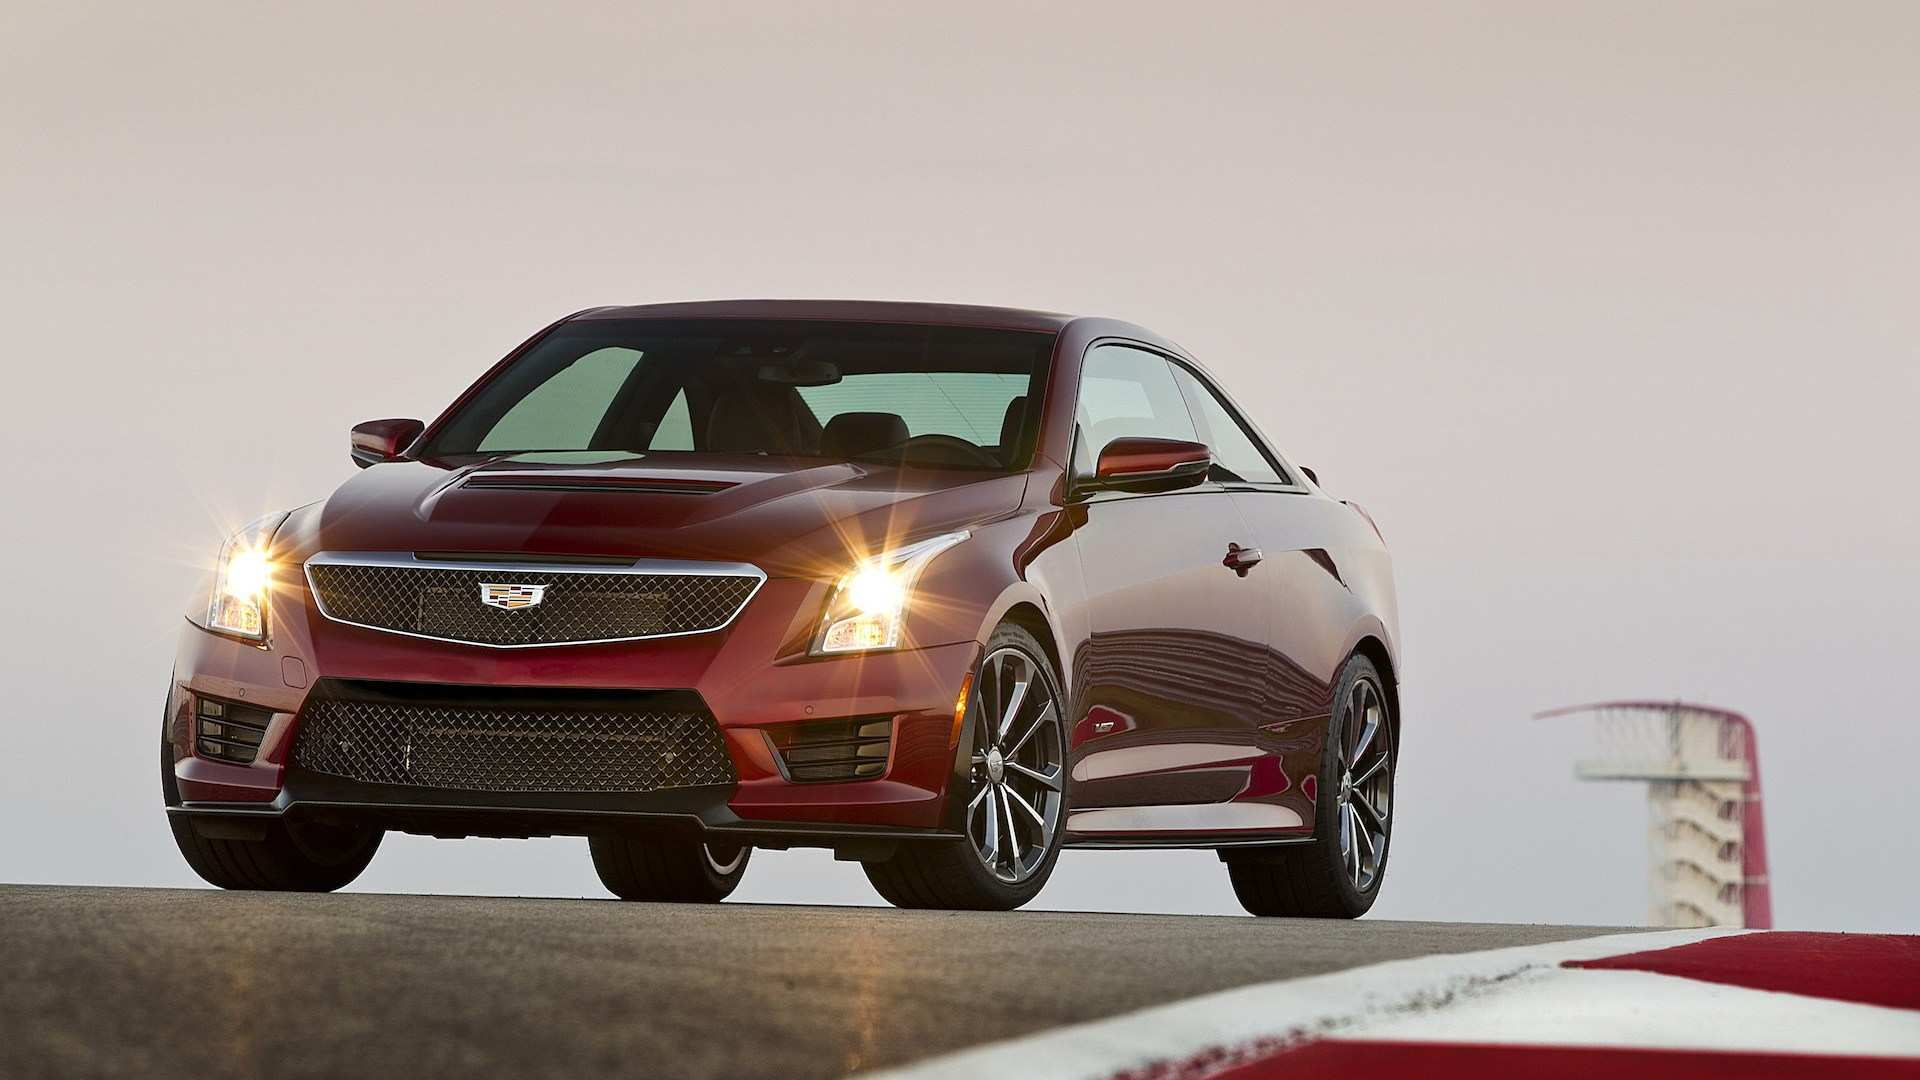 83 New 2019 Cadillac Cts V Coupe Model